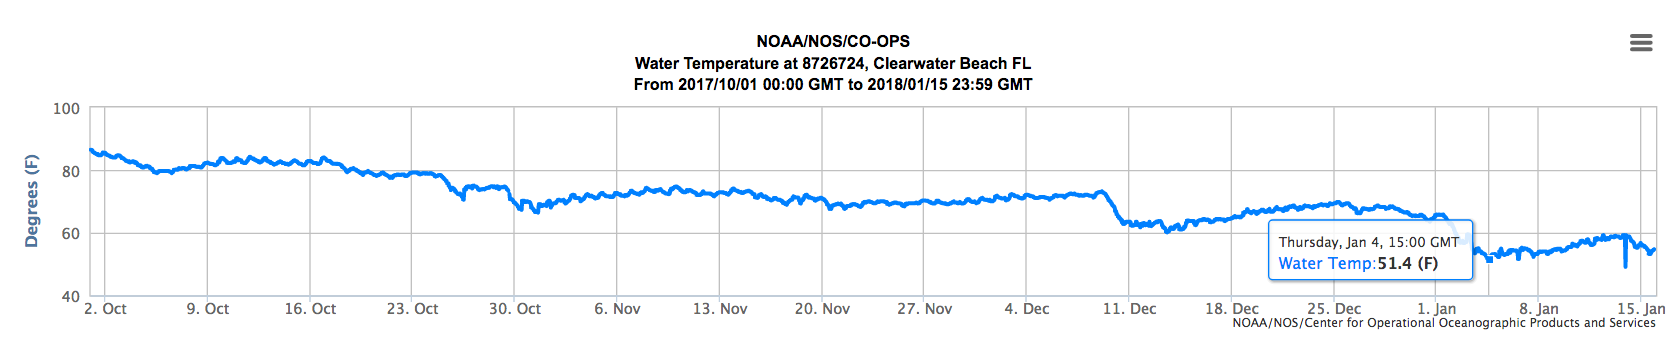 Fall:Winter water temperatures at Clearwater Beach